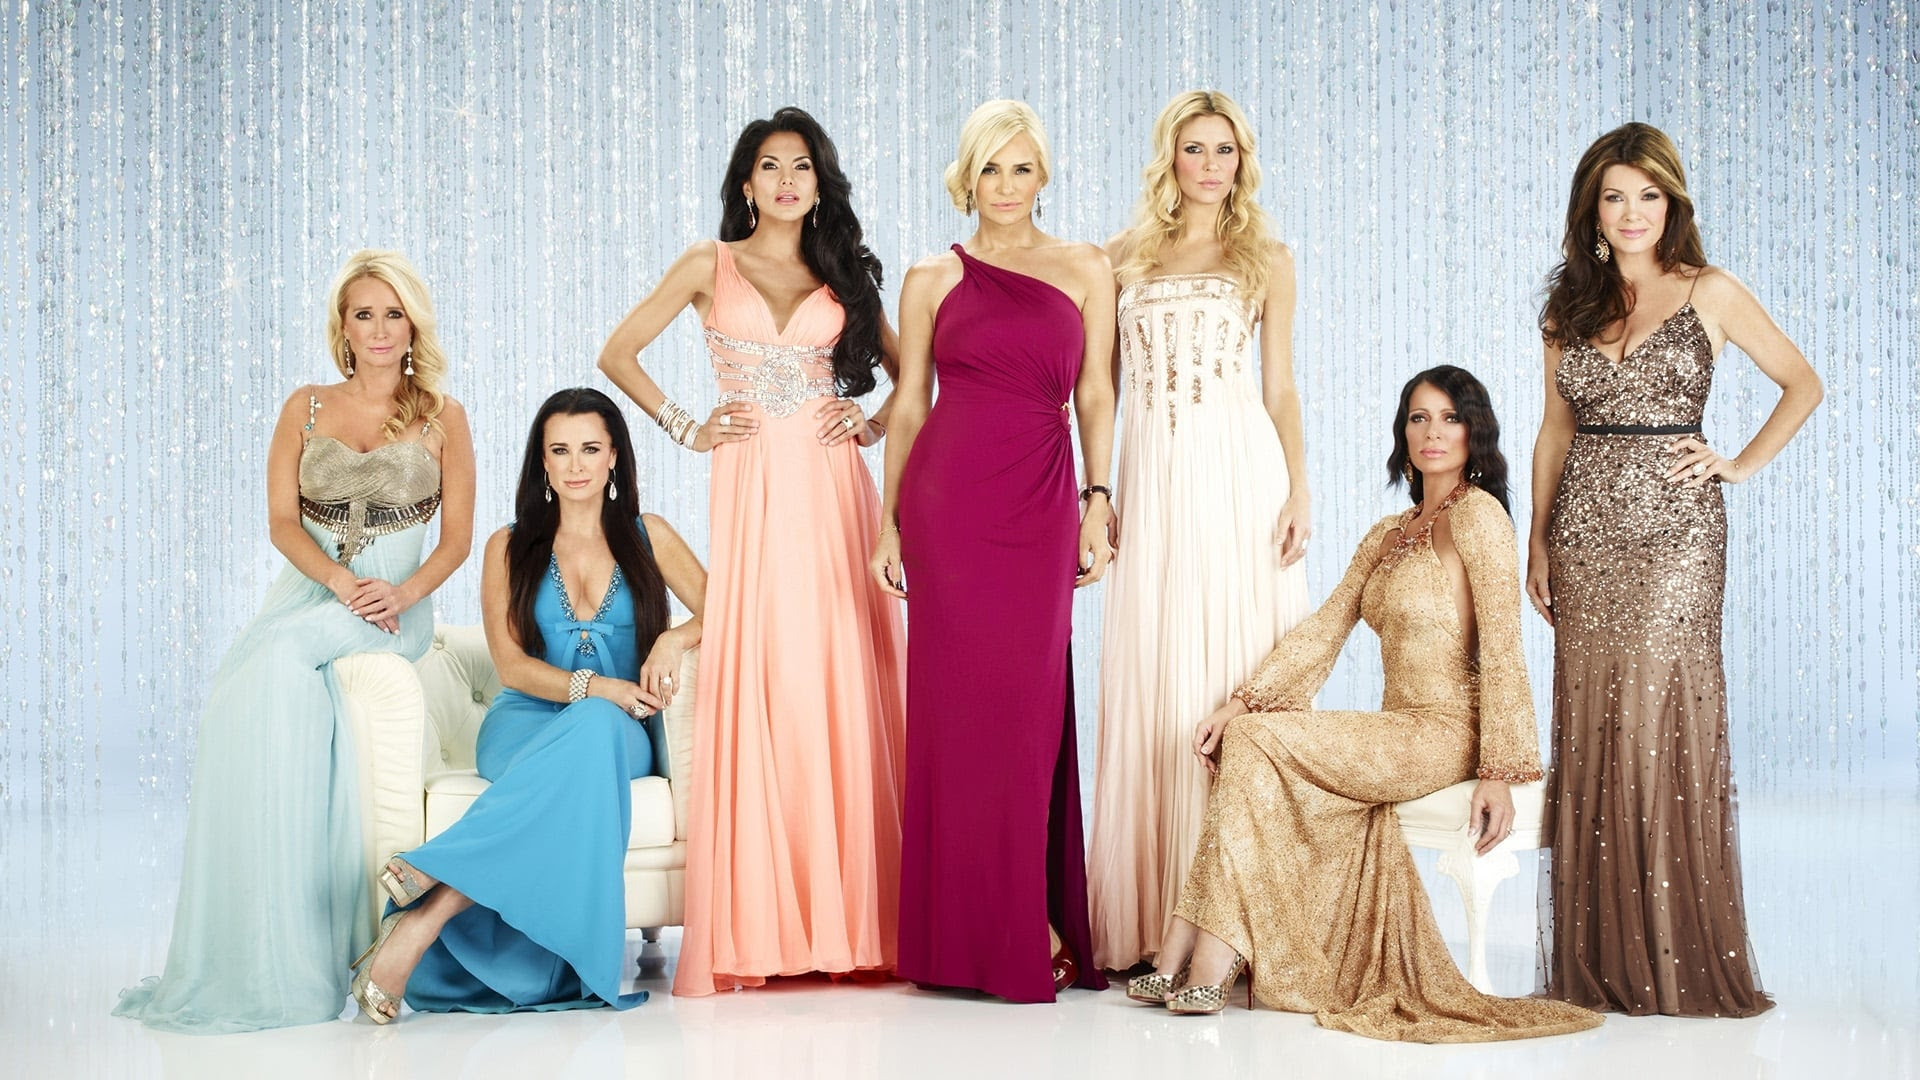 The Real Housewives of Beverly Hills S11E6